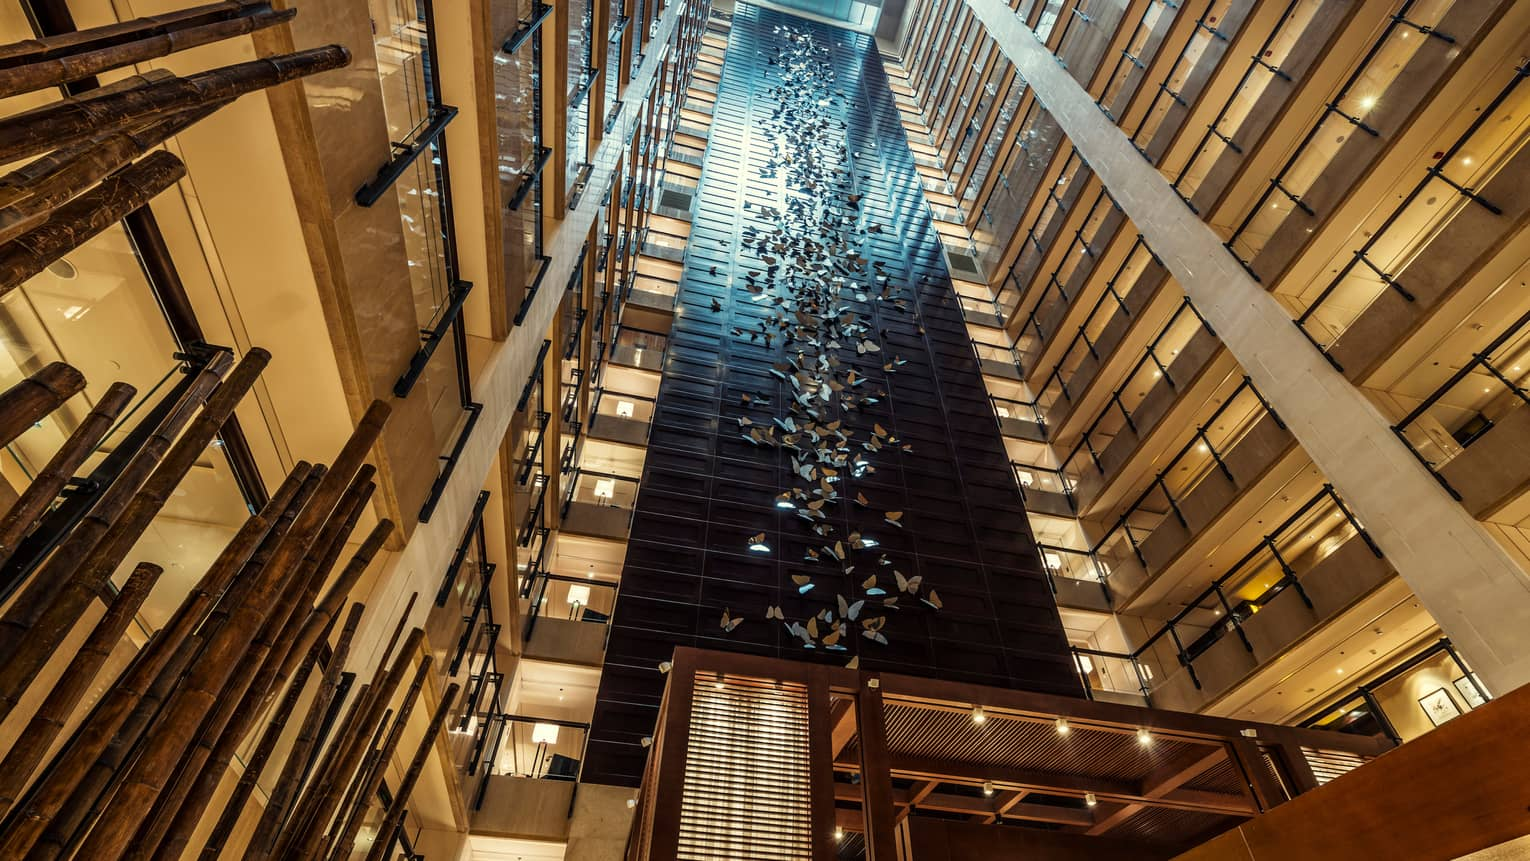 Looking up in 20-storey hotel atrium at 400 stainless-steel butterflies on column